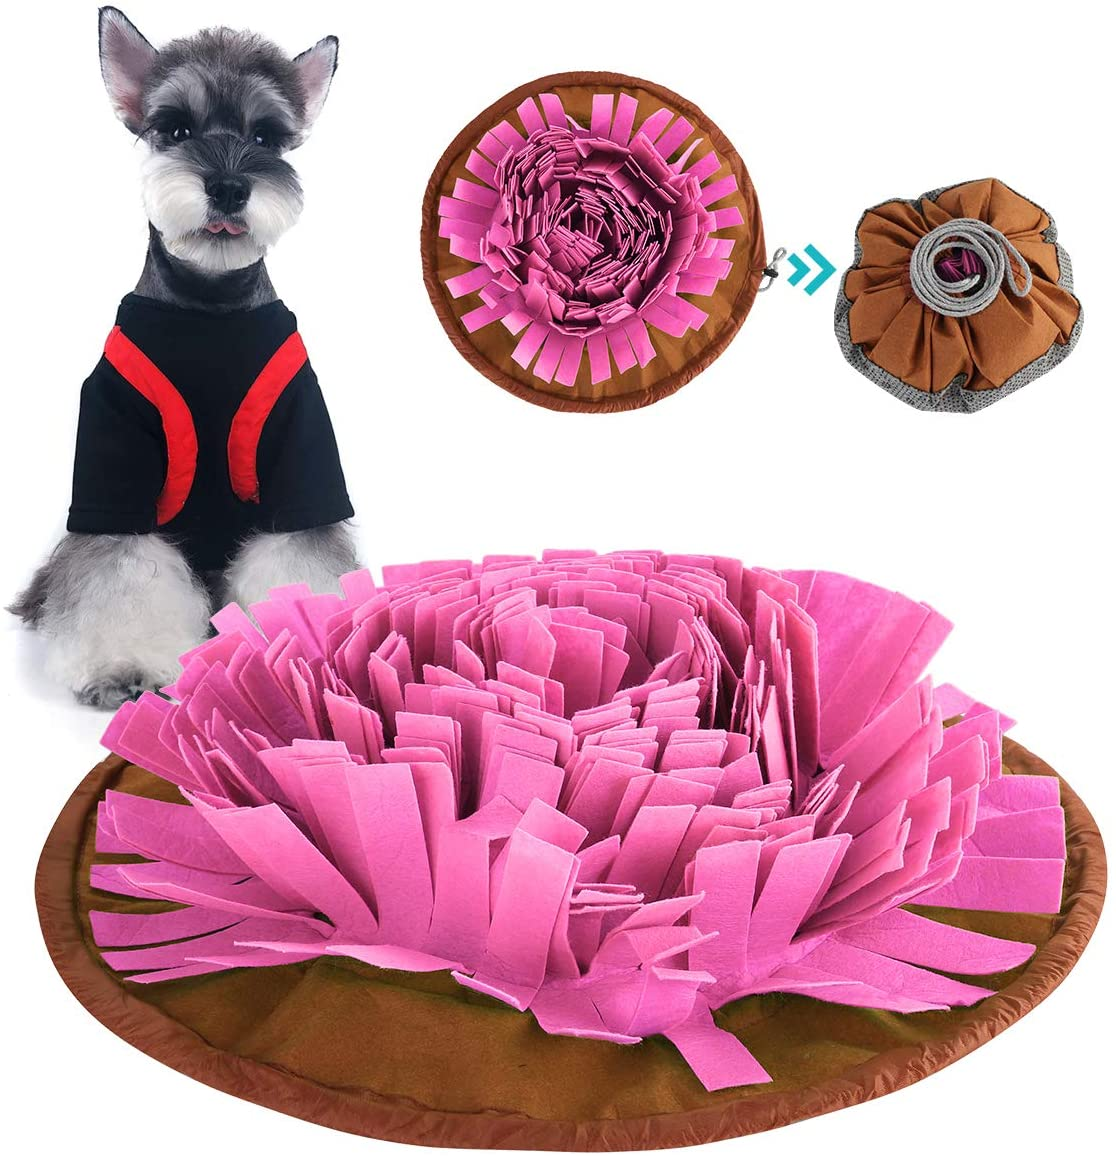 Yuehuam Snuffle Mat for Dogs, Pet Slow Feeding Mat Interactive Feed Game Nosework Foraging Training Interactive Puzzle Treat Play Mat Pad Toy for Puppy Doggies